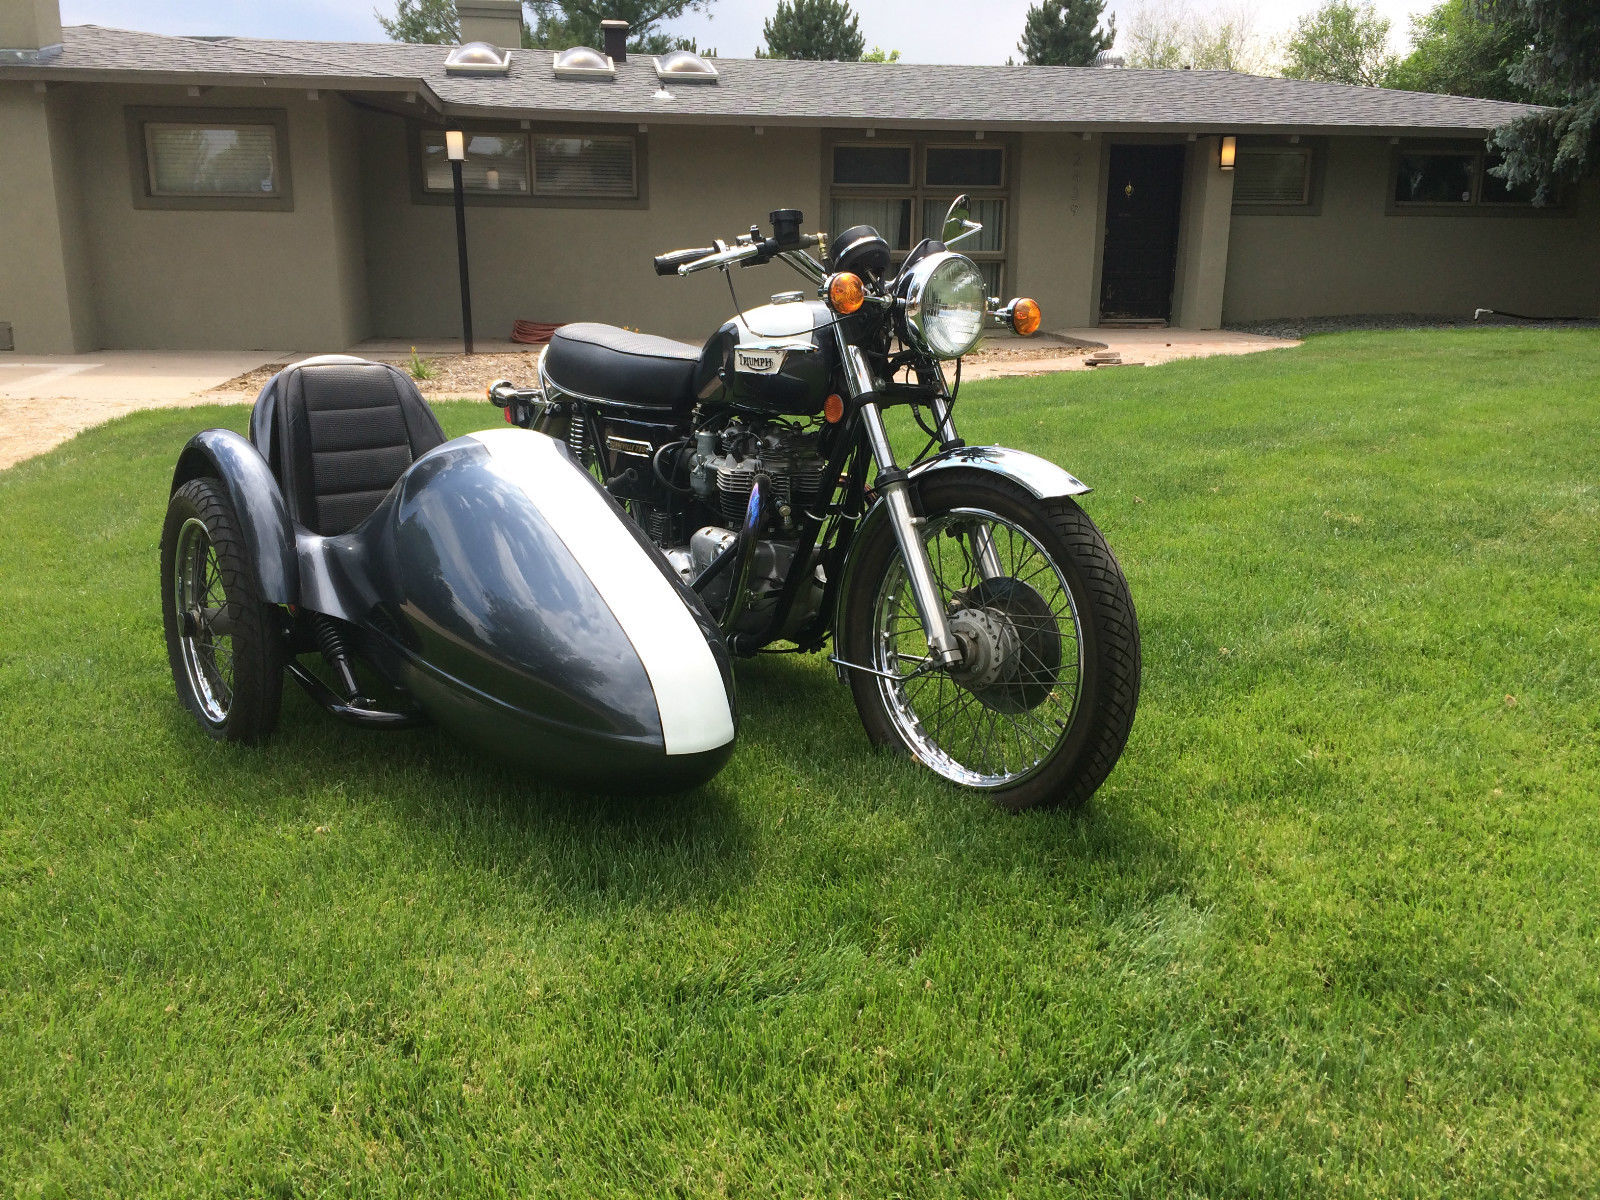 triumph bonneville with sidecar - 1977 - restored classic